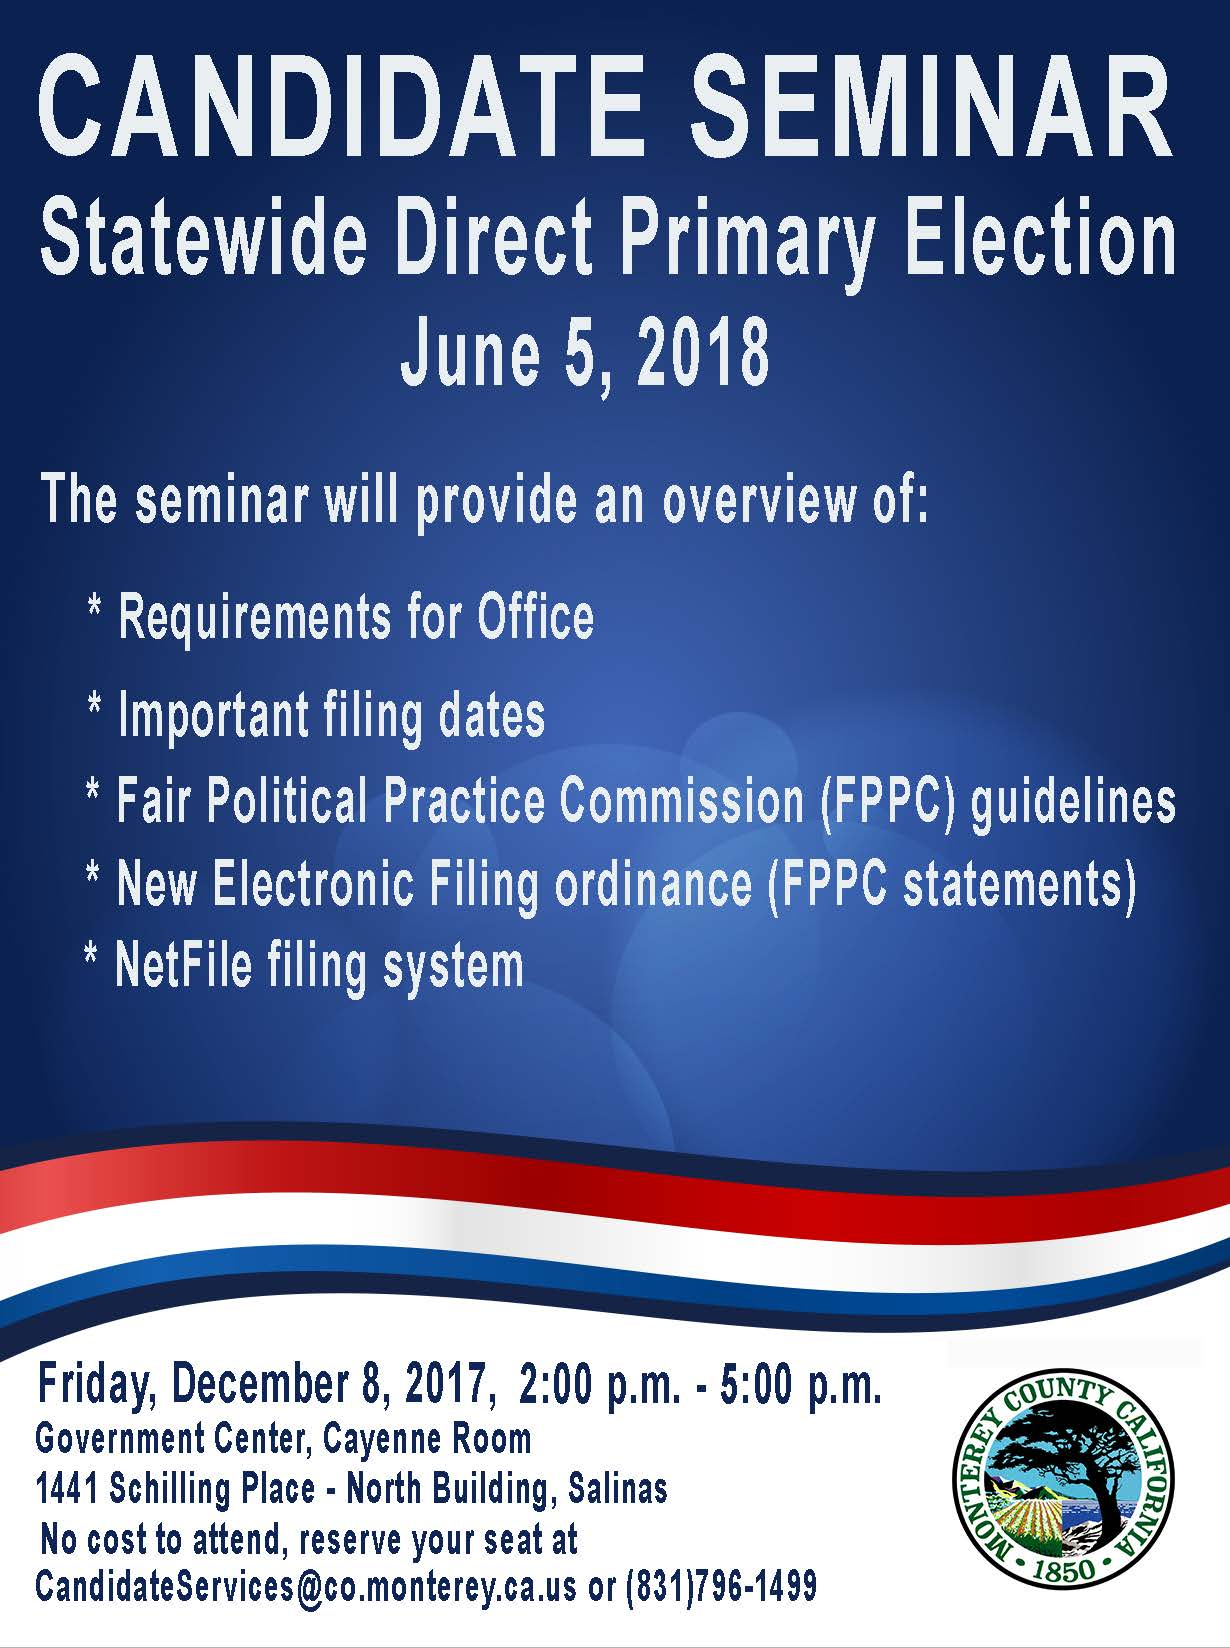 CANDIDATE SEMINAR Statewide Direct Primary Election June 5, 2018